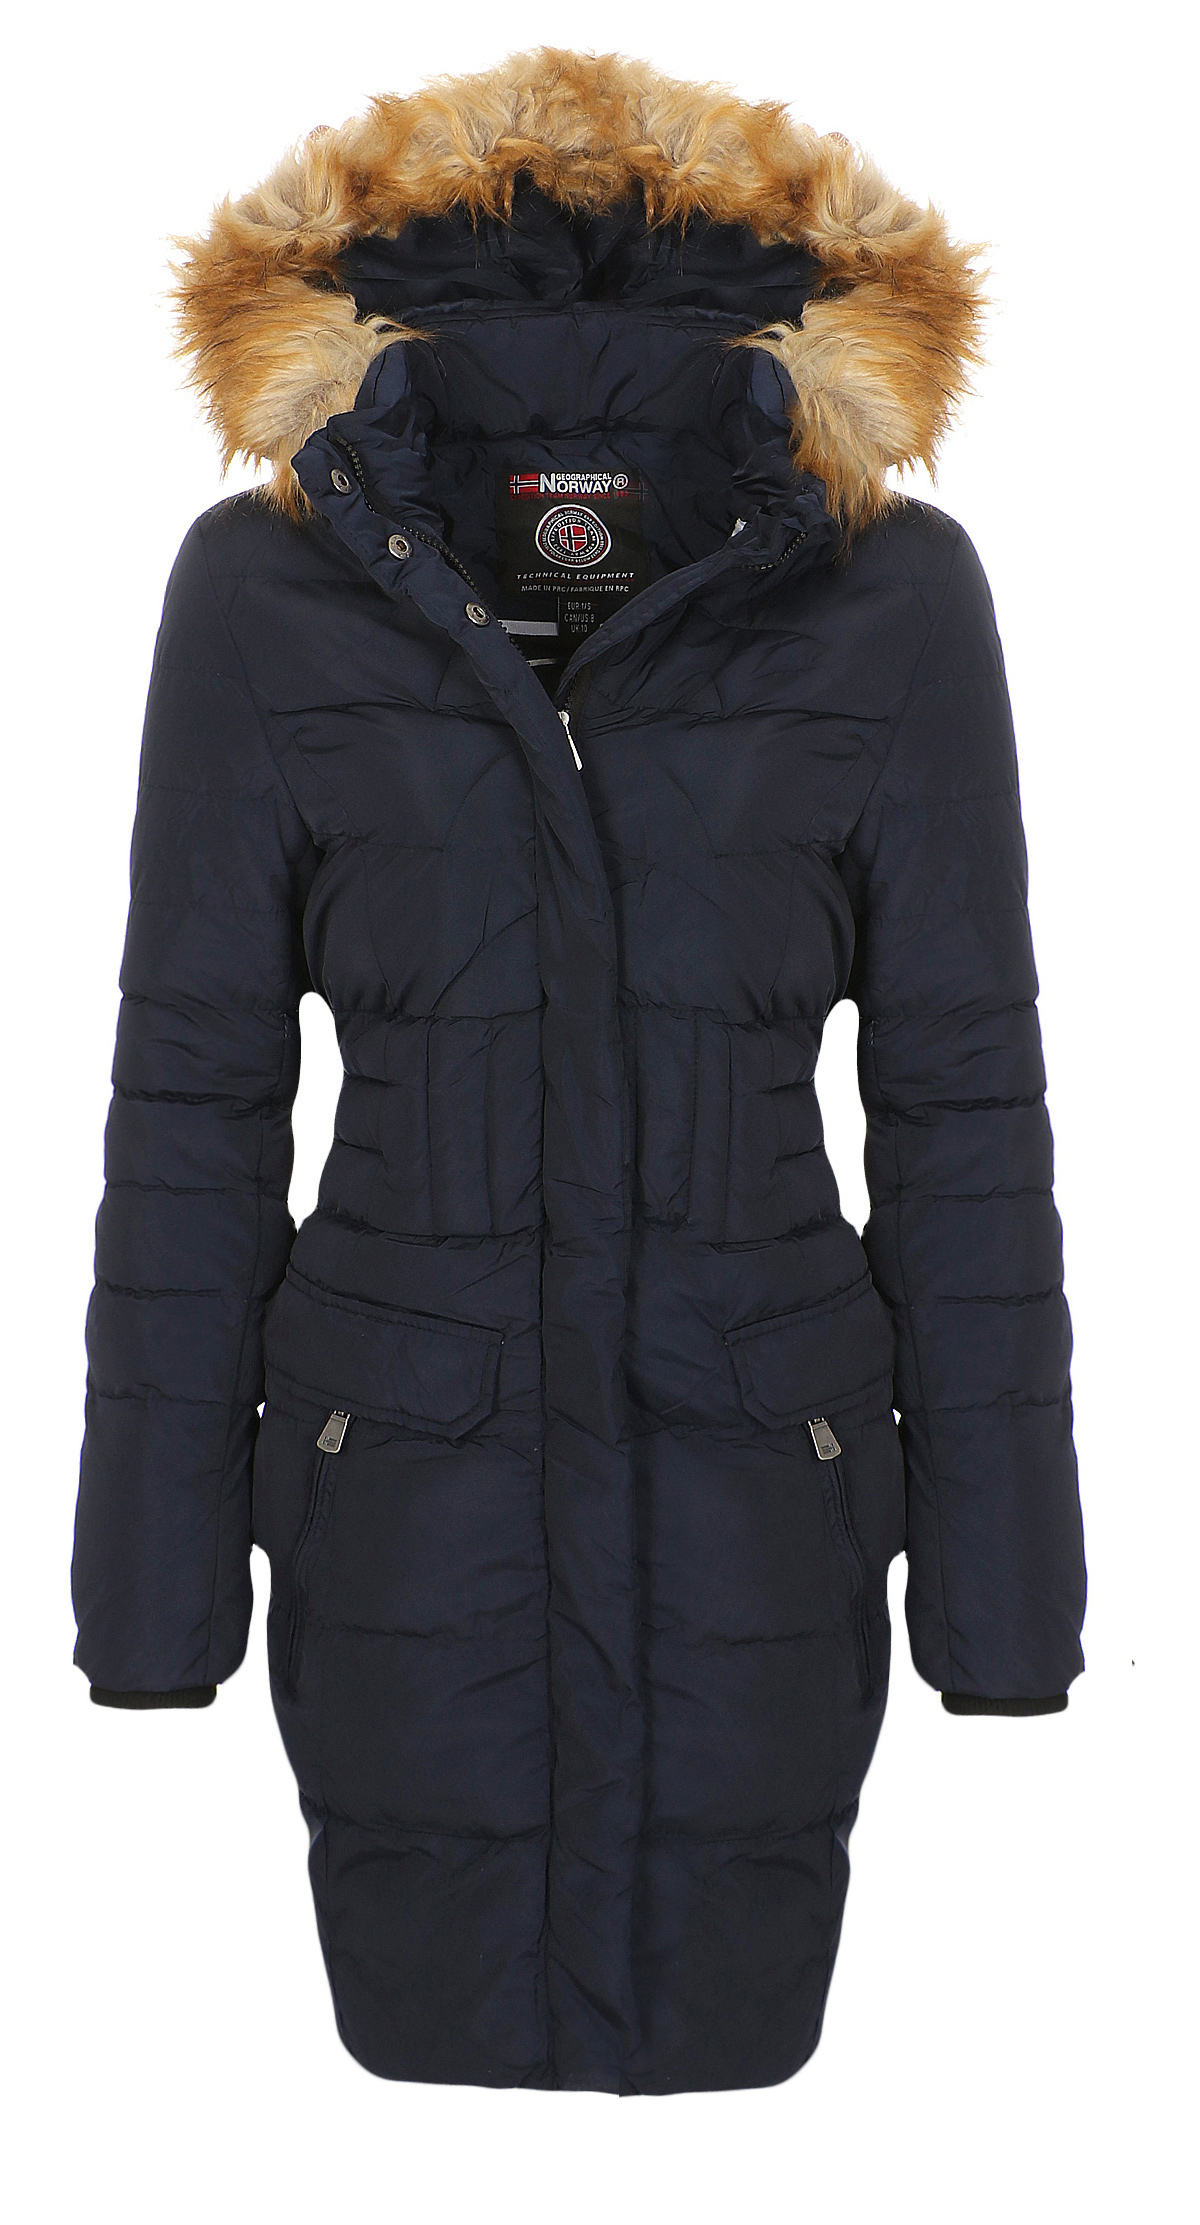 Details about Geographical Norway Women's Winter Jacket Coat Long Padded Winter Jacket Parka